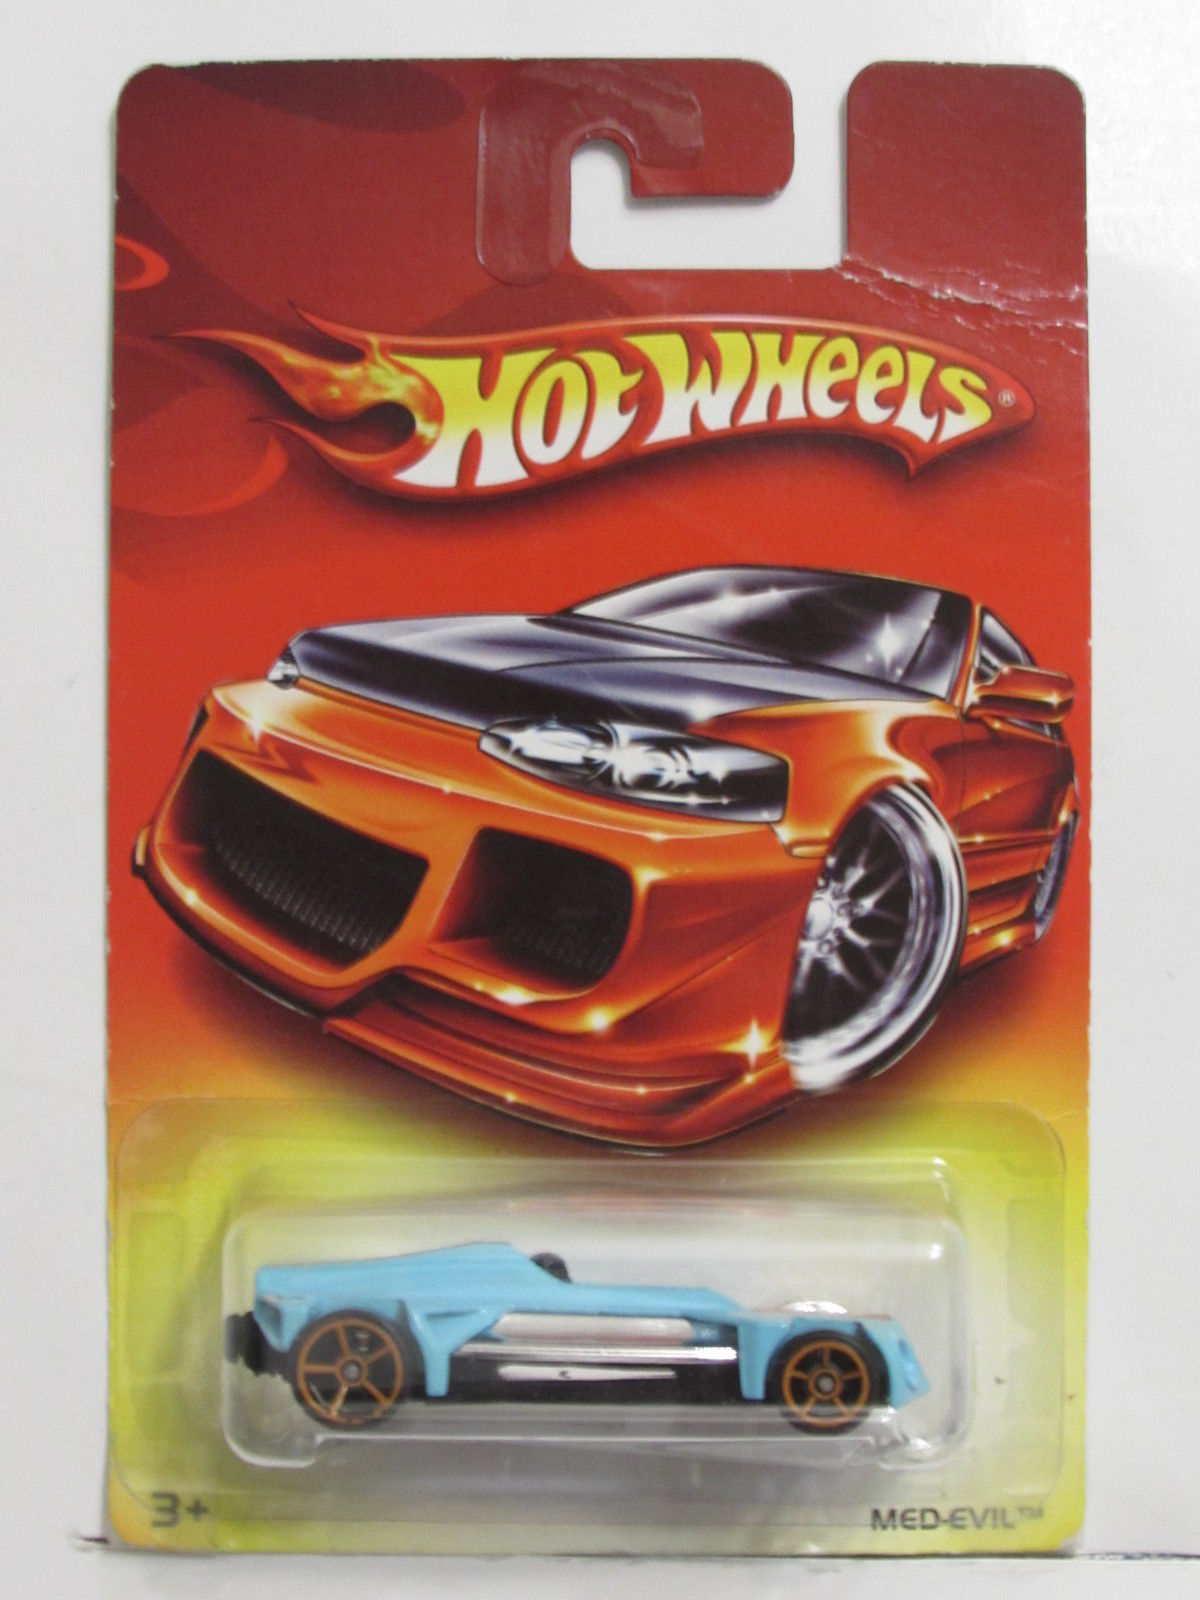 HOT WHEELS 2006 WALMART MED-EVIL